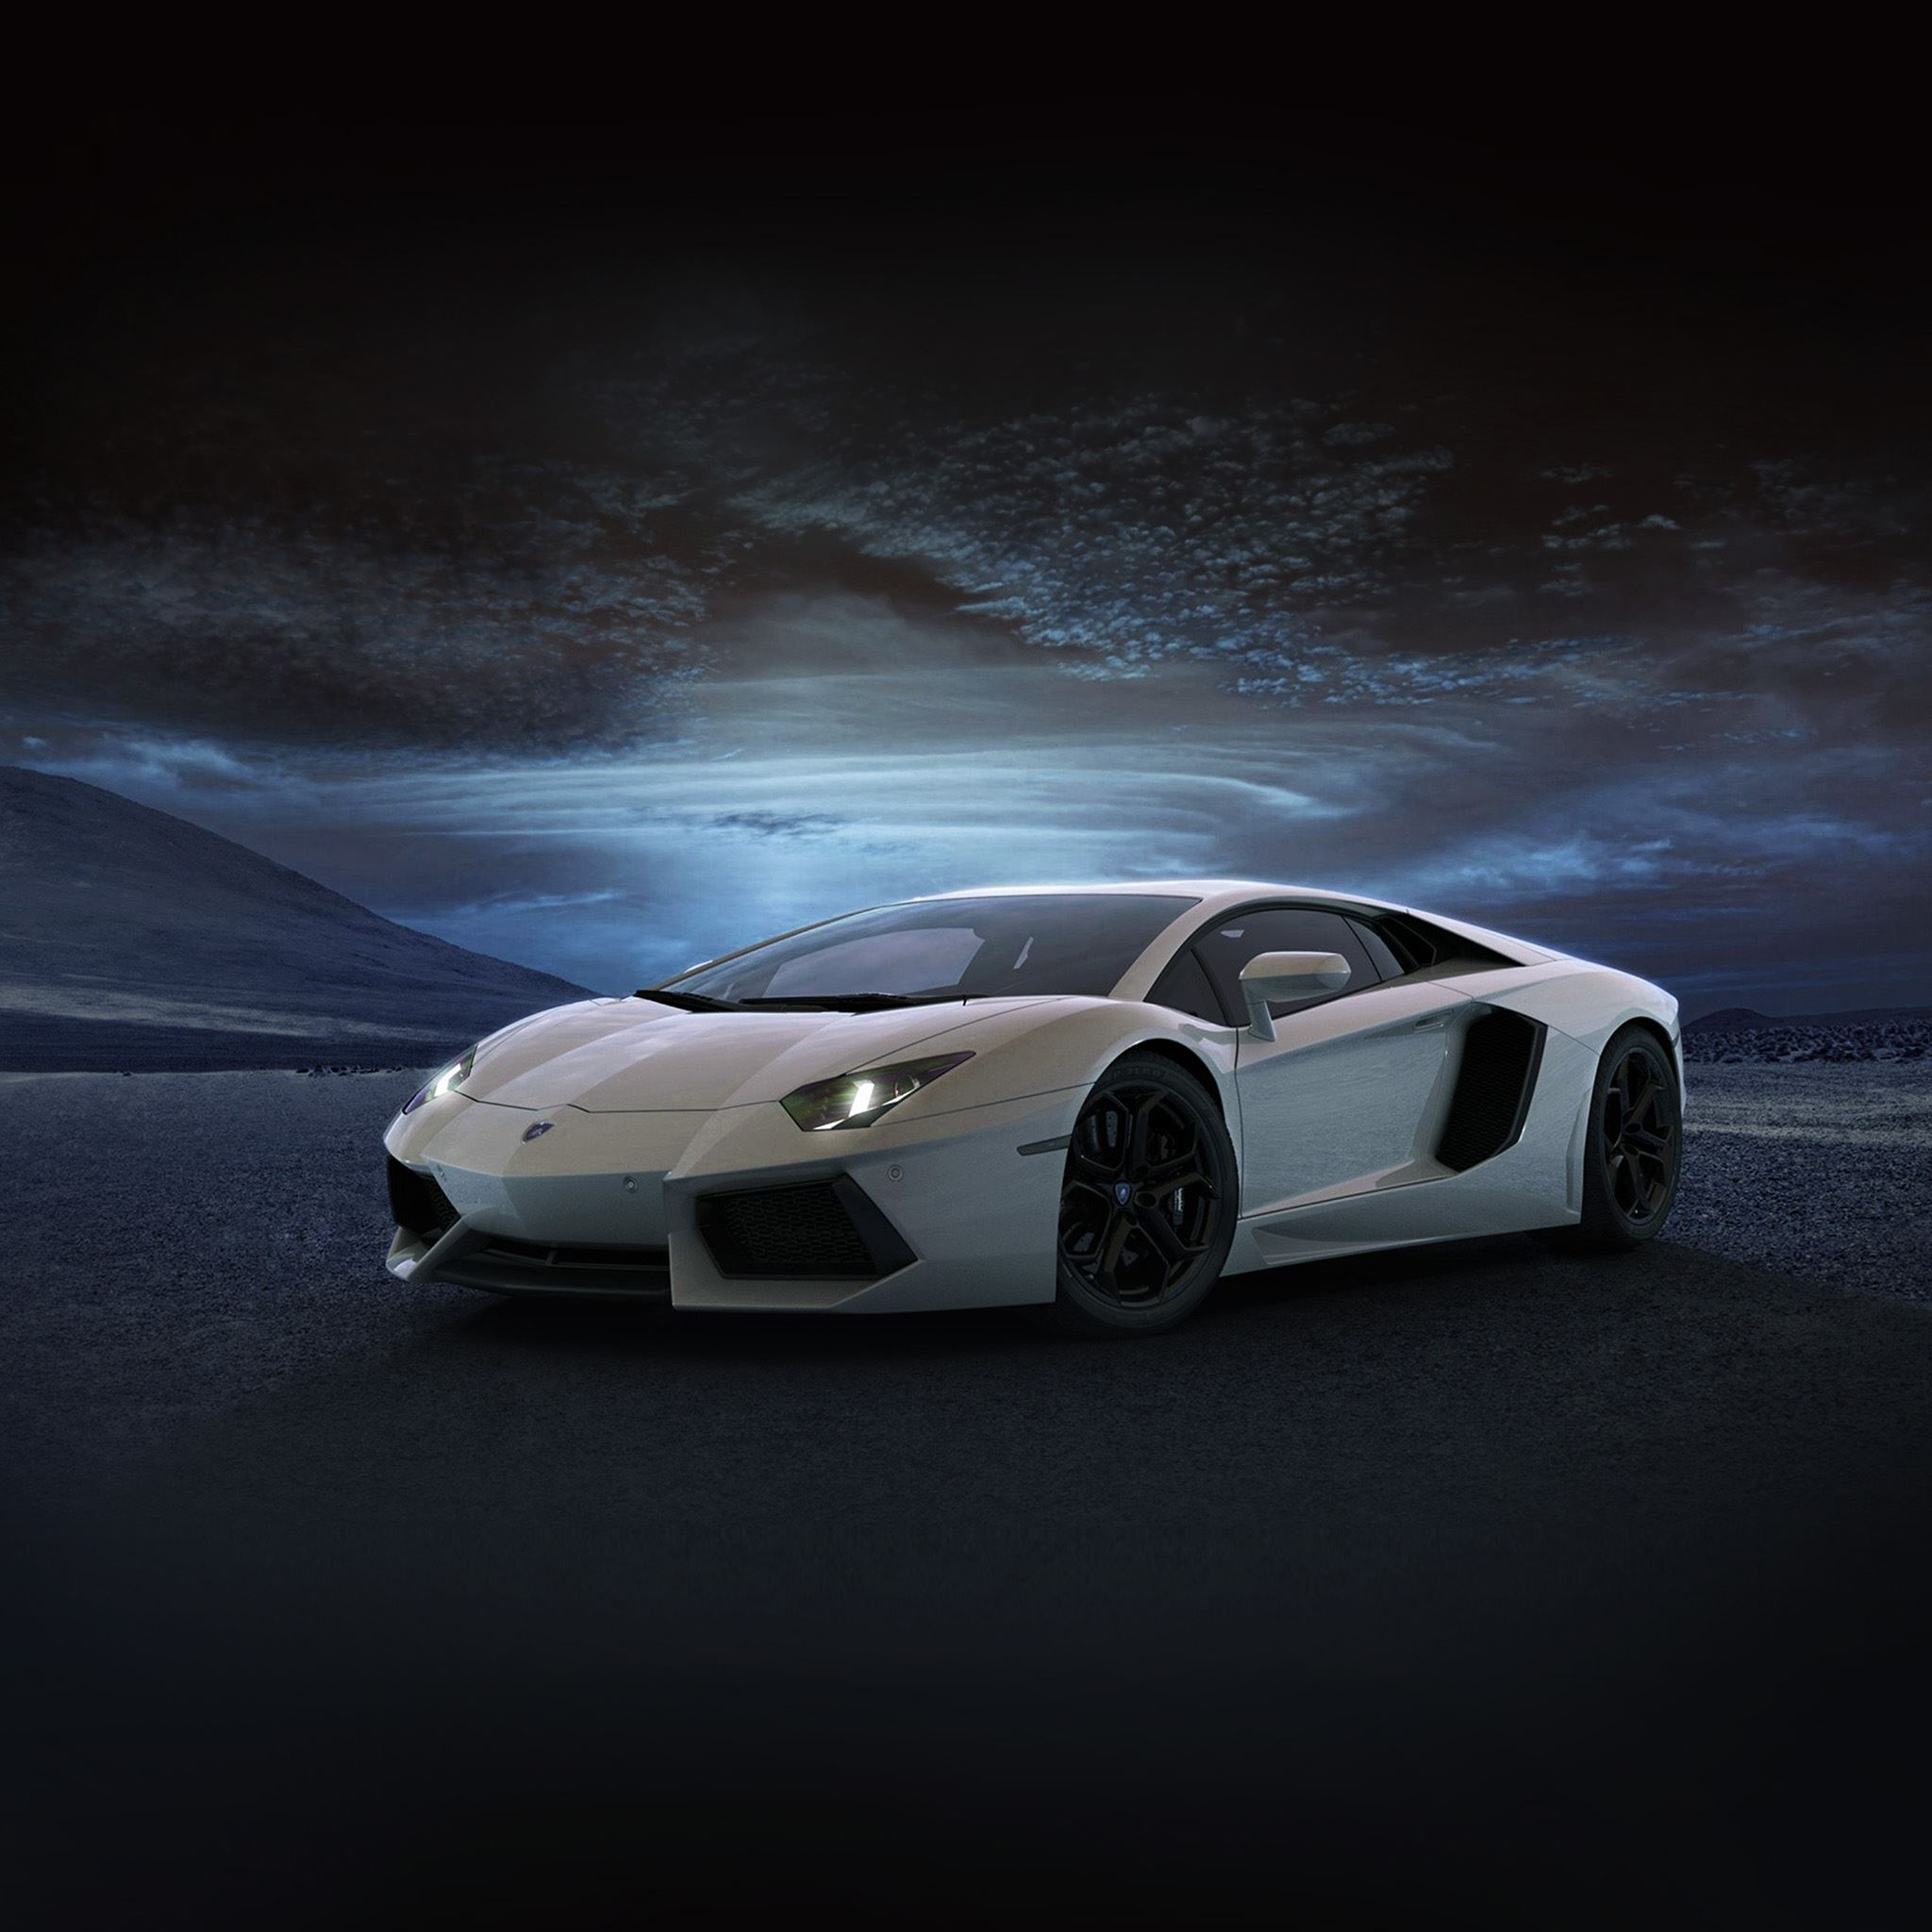 Best Auto Vehicles Ipad Wallpapers Free Hd